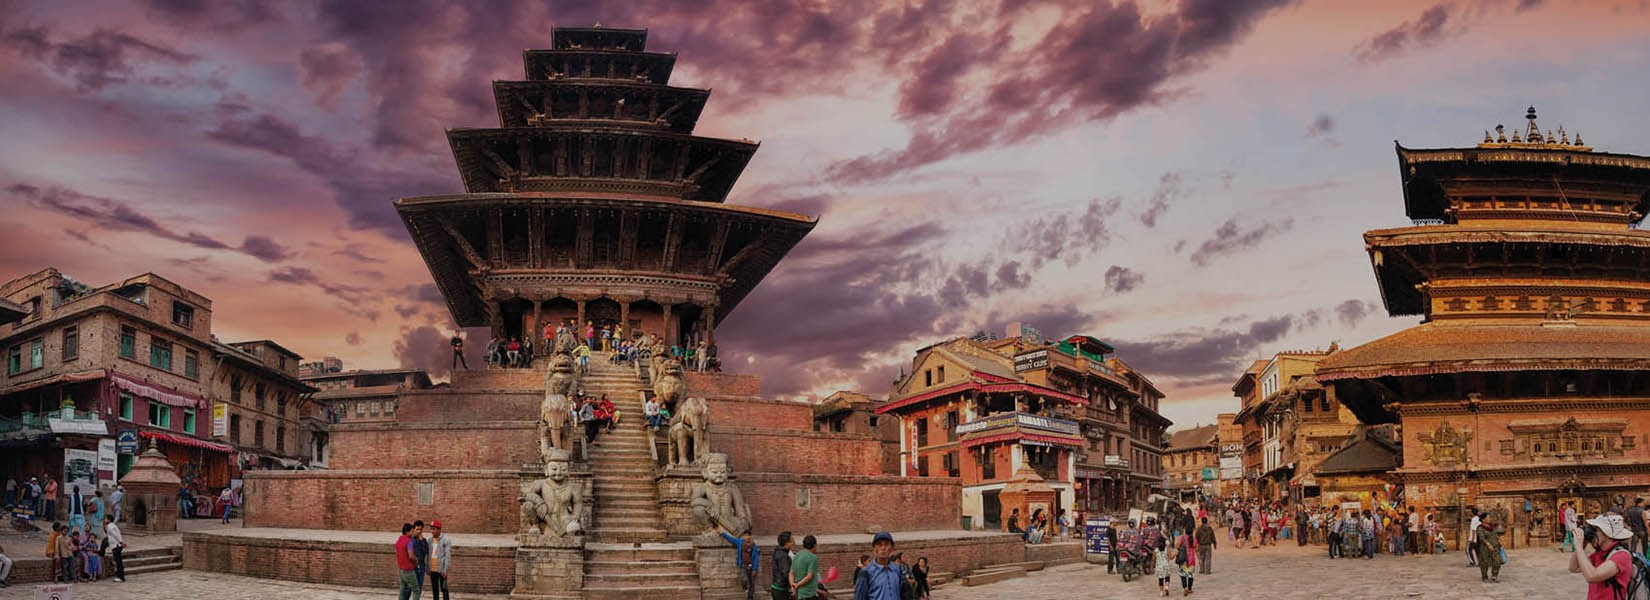 Best of Nepal Tour - 9 Days